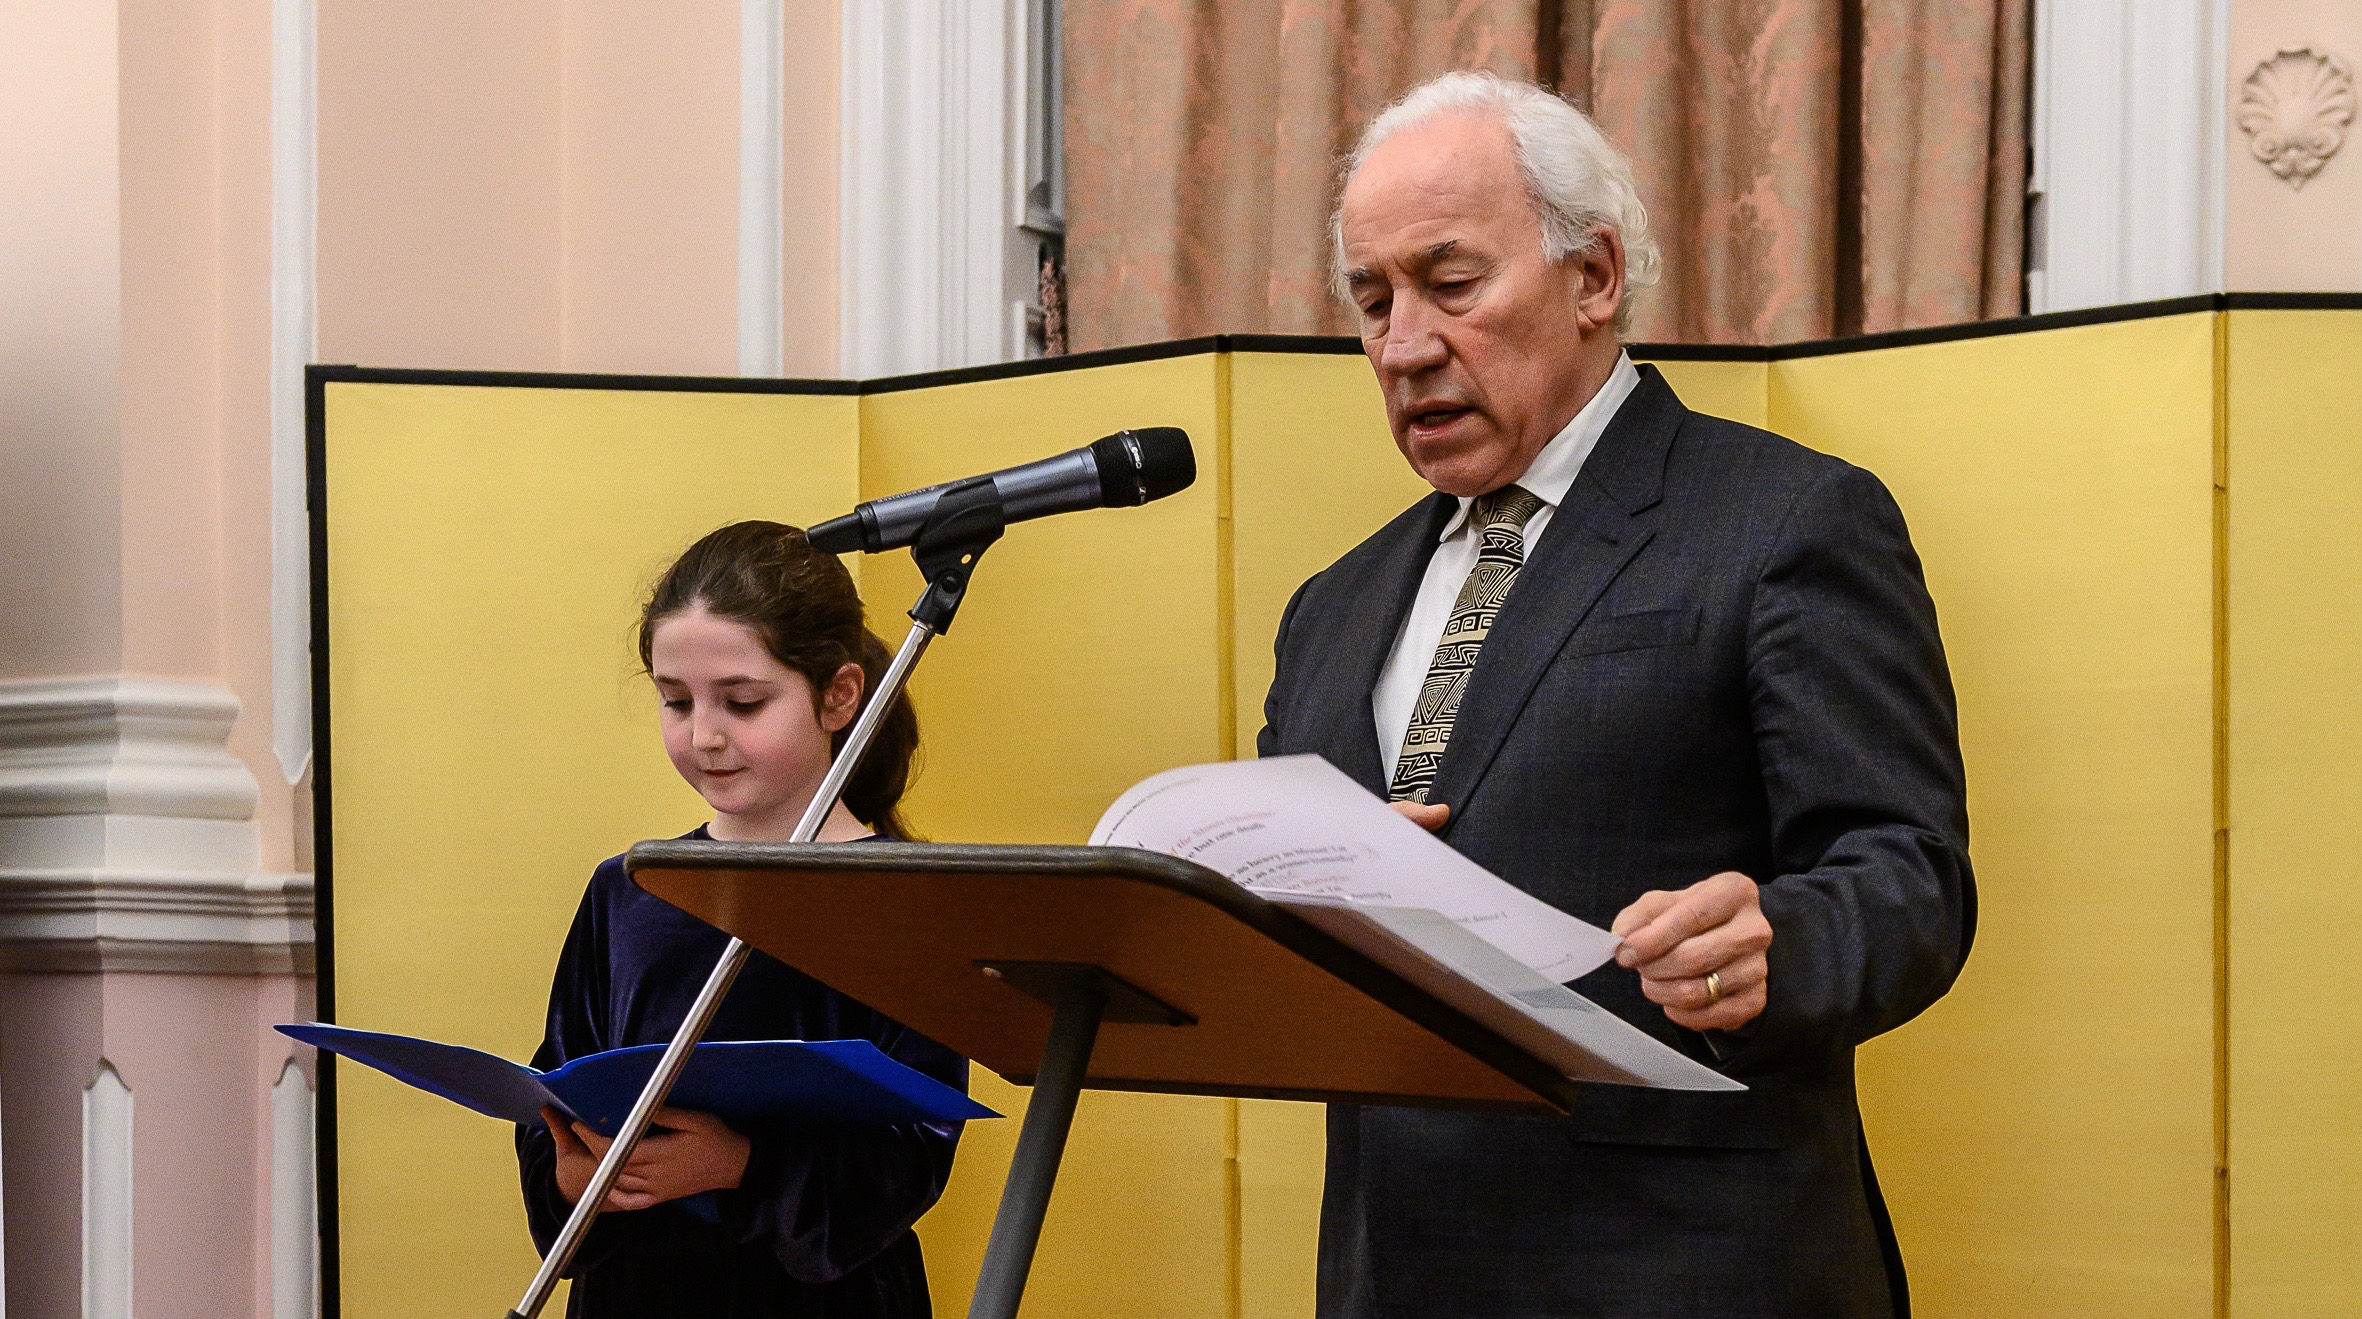 Simon Callow and Clementine Laikin